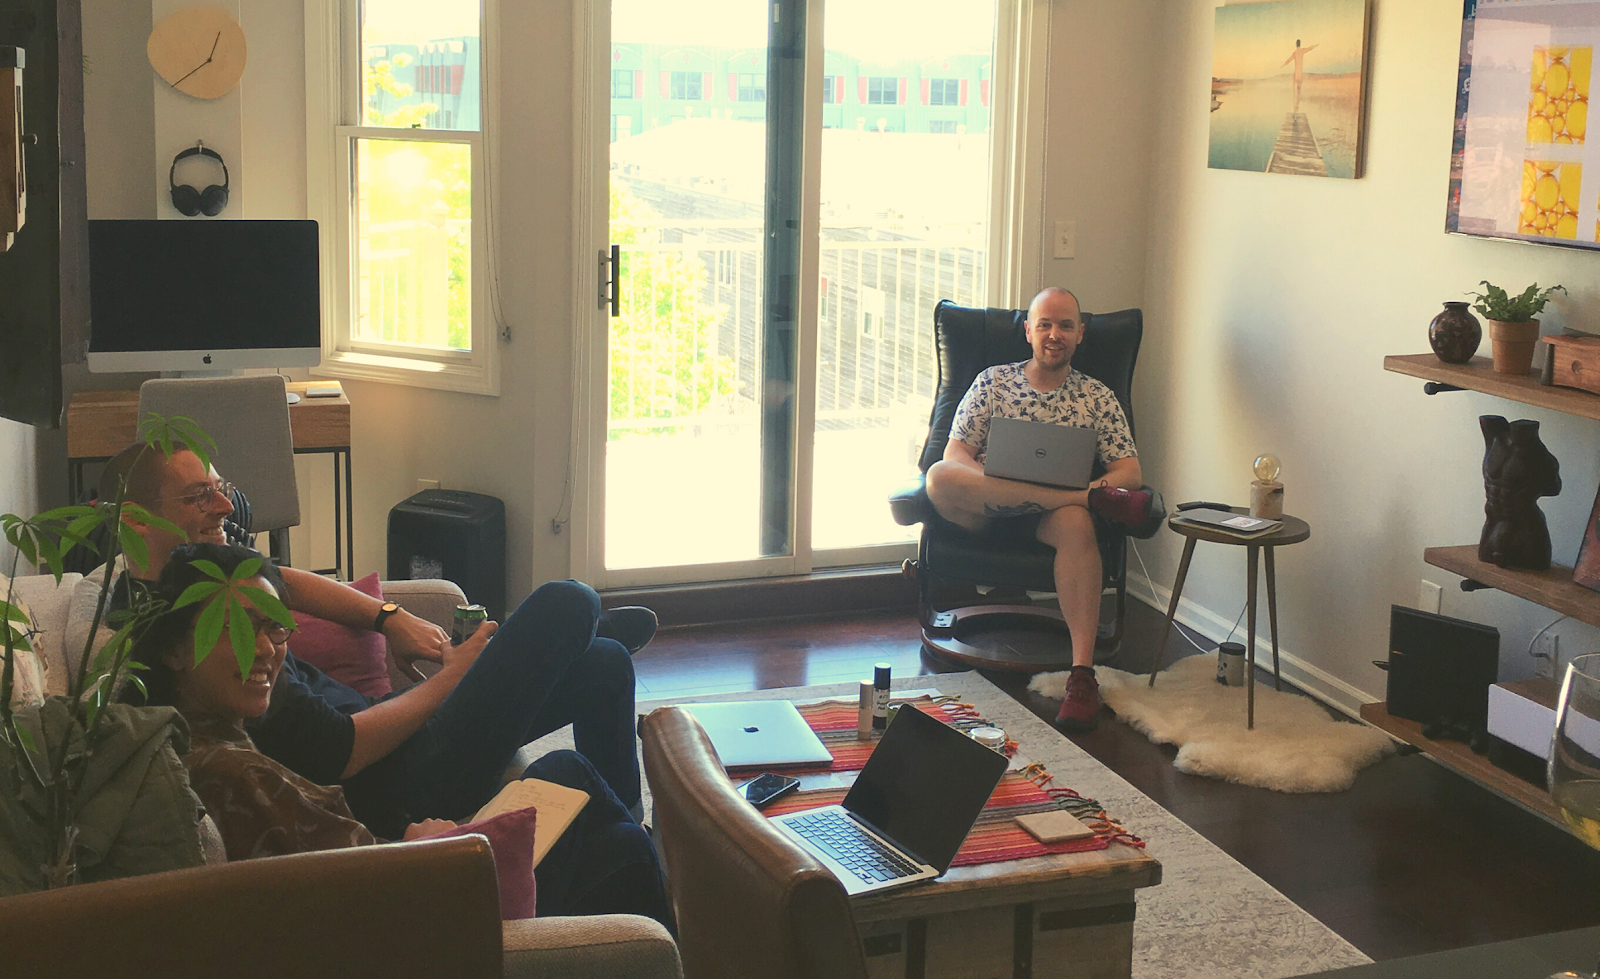 Collaborating with our web designers on branding and site usability